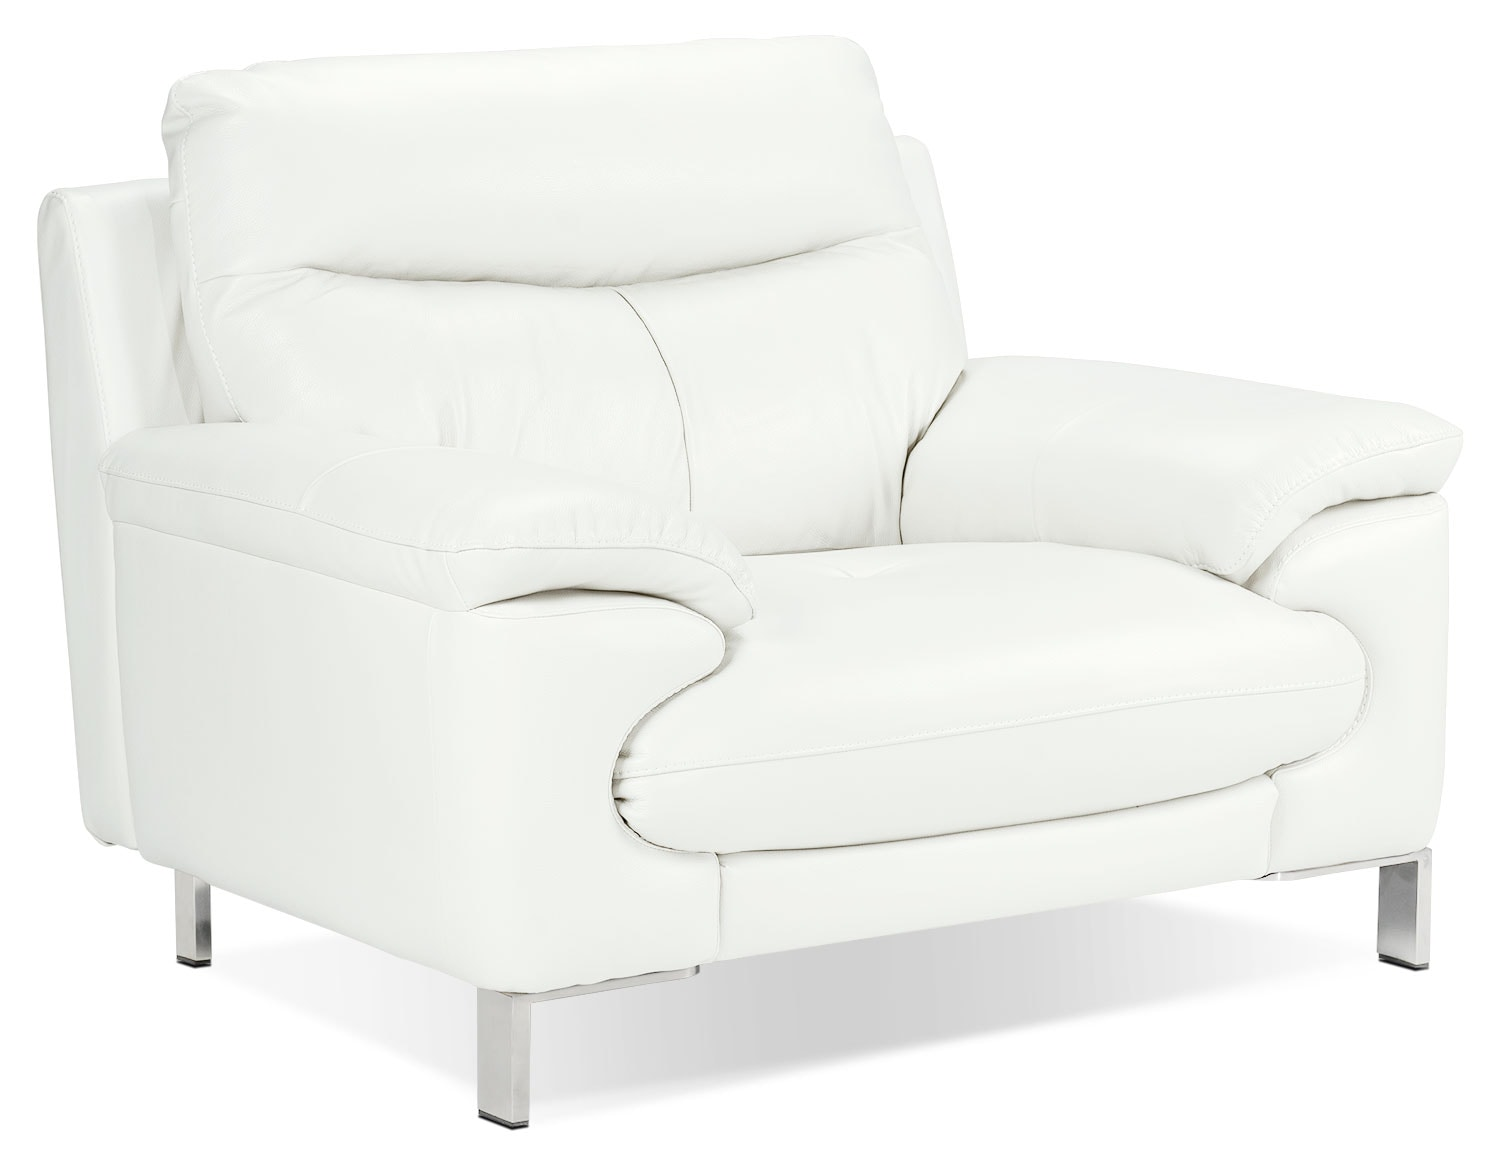 Anika Chair - White